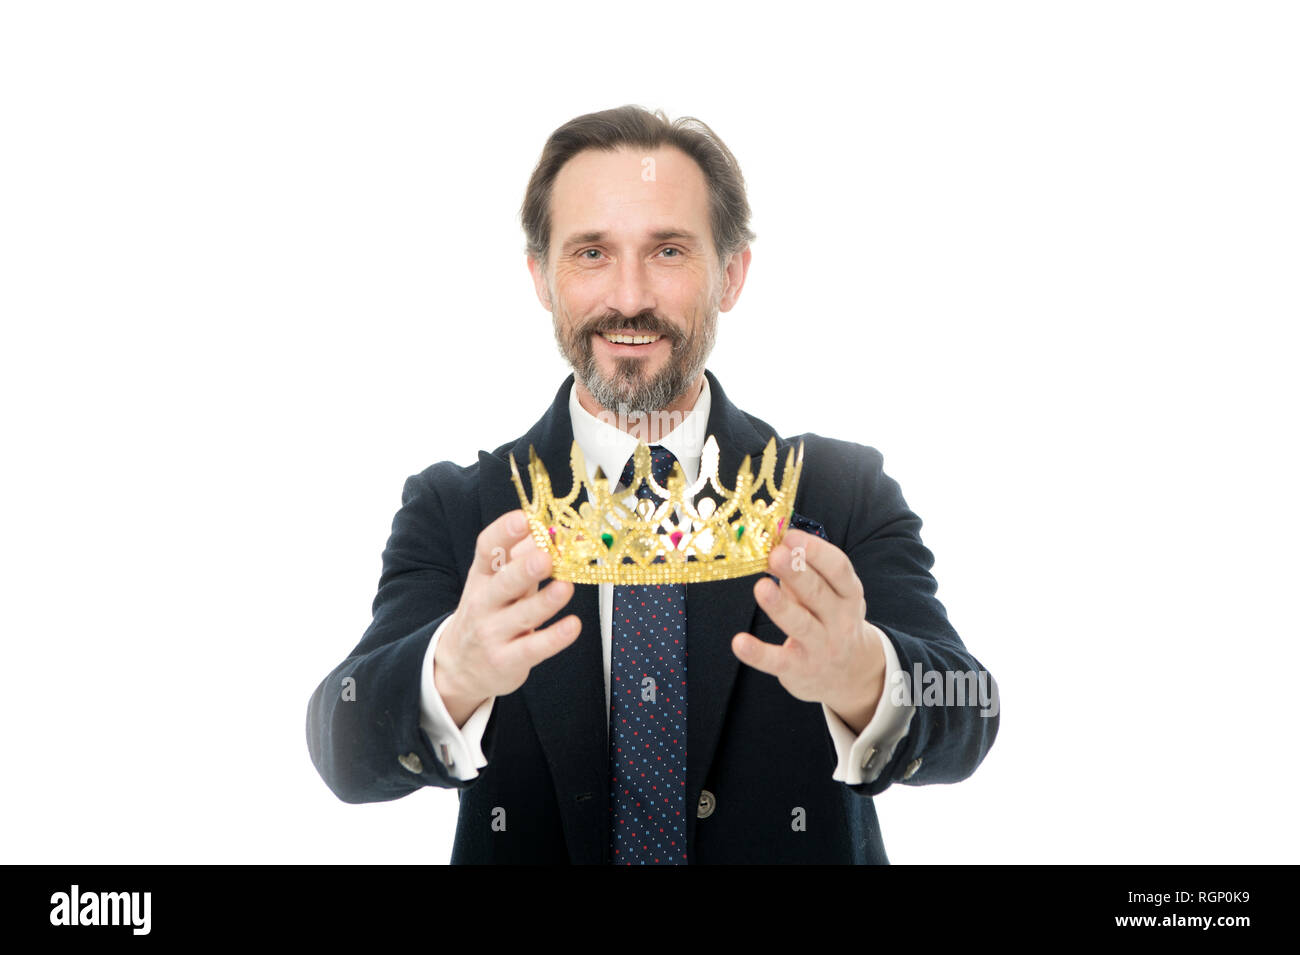 Become king ceremony. King attribute. Become next king. Monarchy family traditions. Man nature bearded guy in suit hold golden crown symbol of monarchy. Direct line to throne. Enormous privilege. - Stock Image